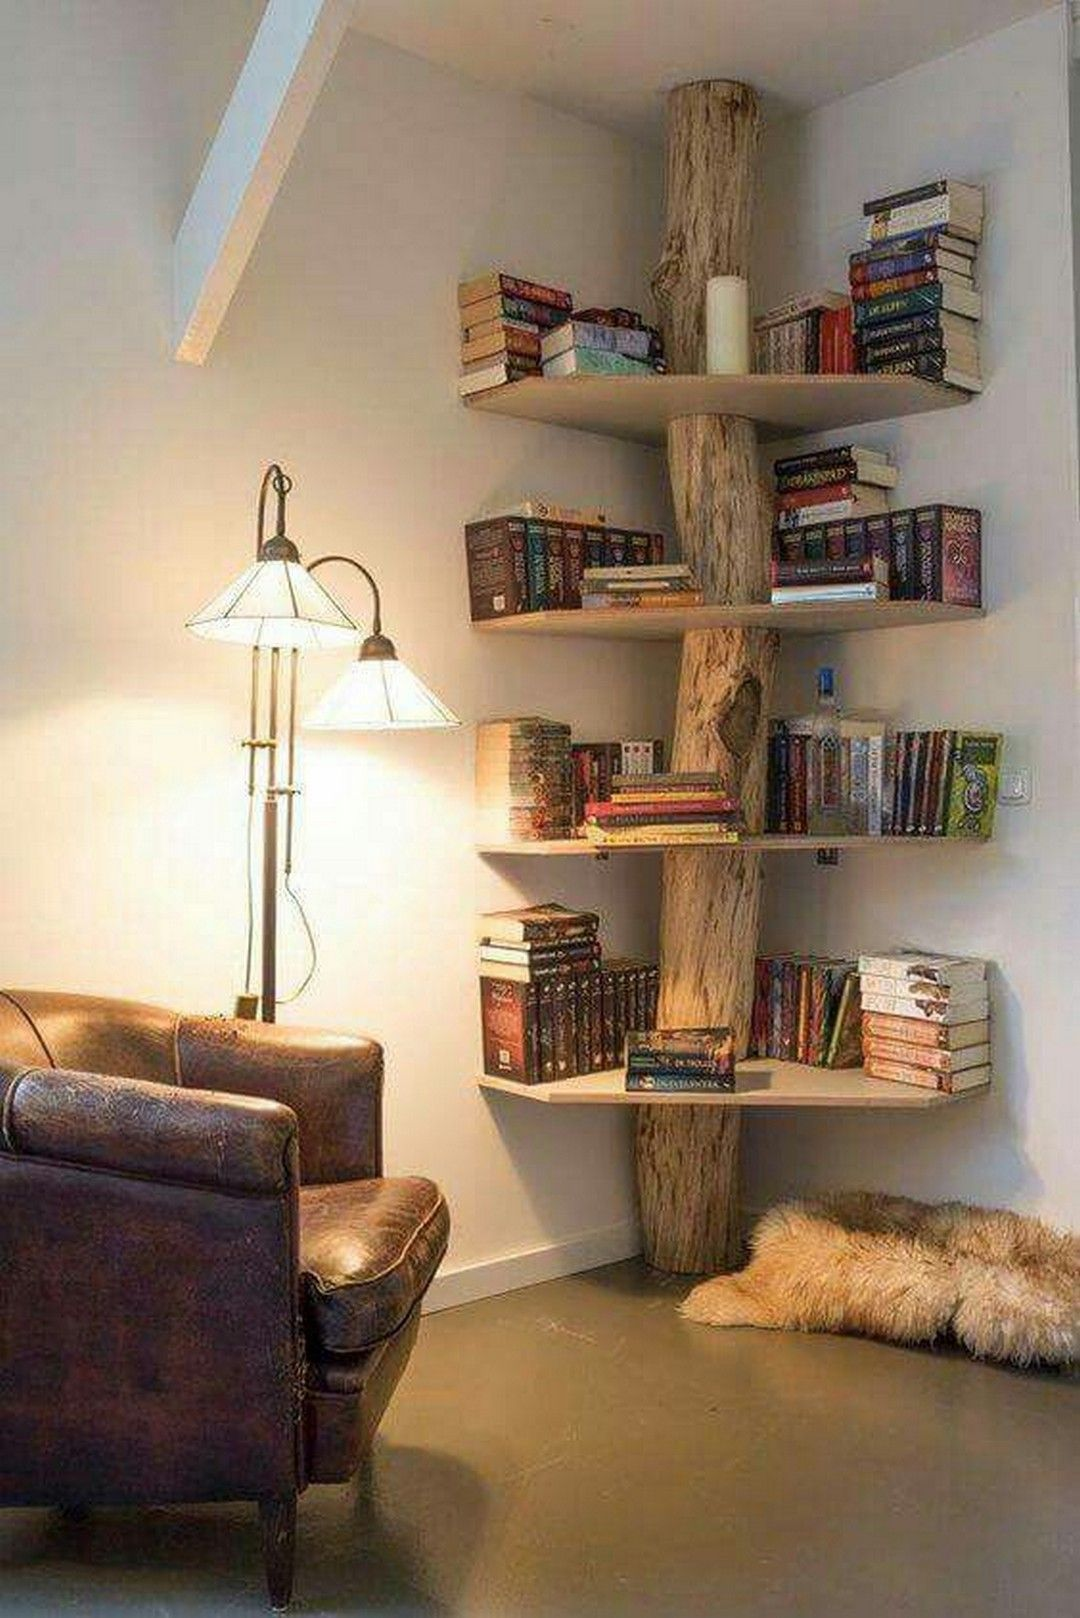 Cool 122 Easy And Simple Diy Rustic Home Decor Ideas Https Www Architecturehd 2017 05 22